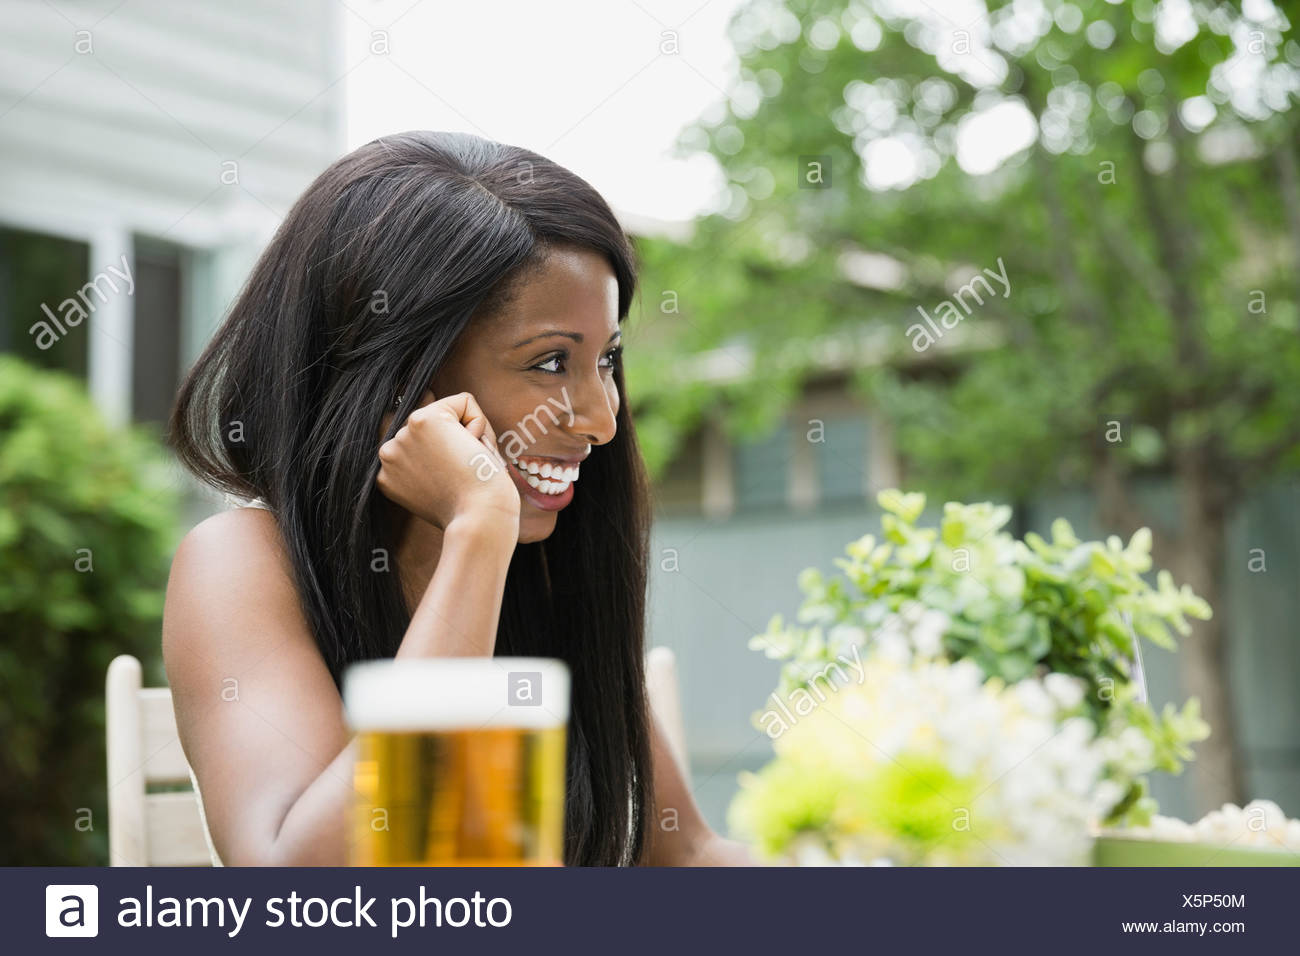 Cheerful woman sitting in back yard looking away - Stock Image